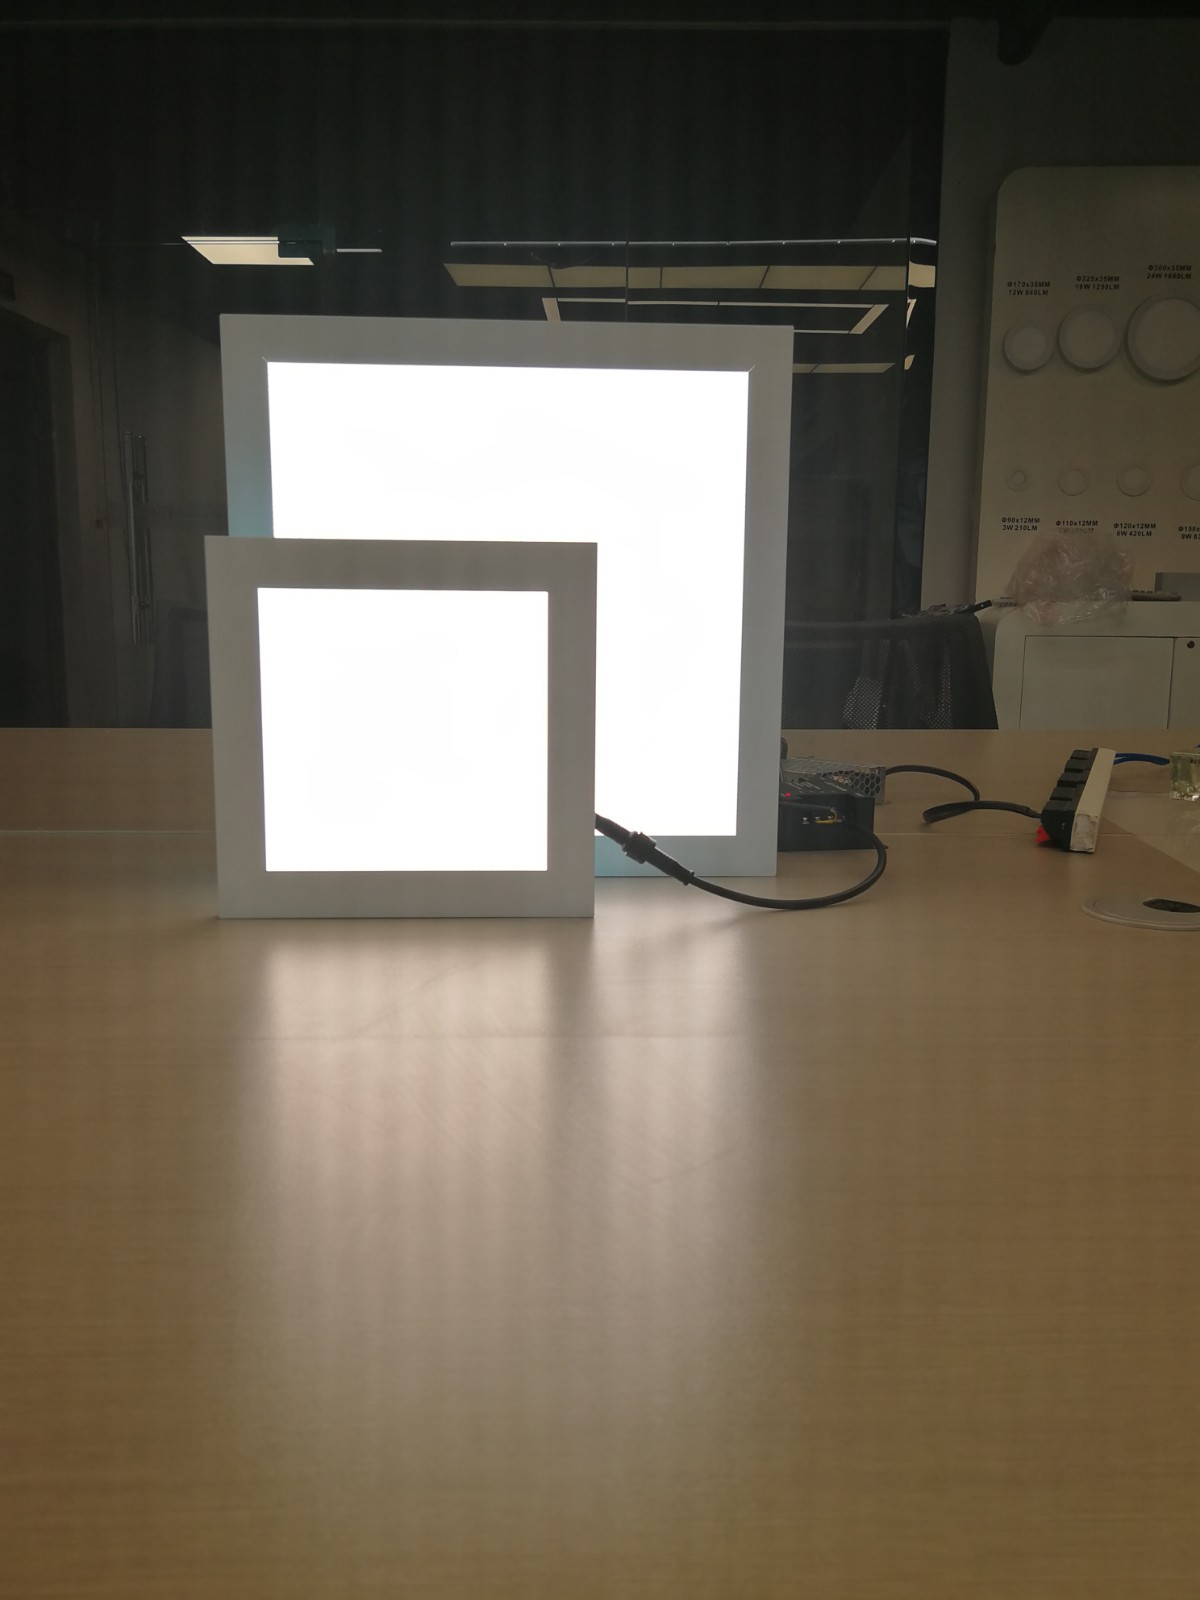 New surface mounted led panel light light for sale for retail / shopping-2